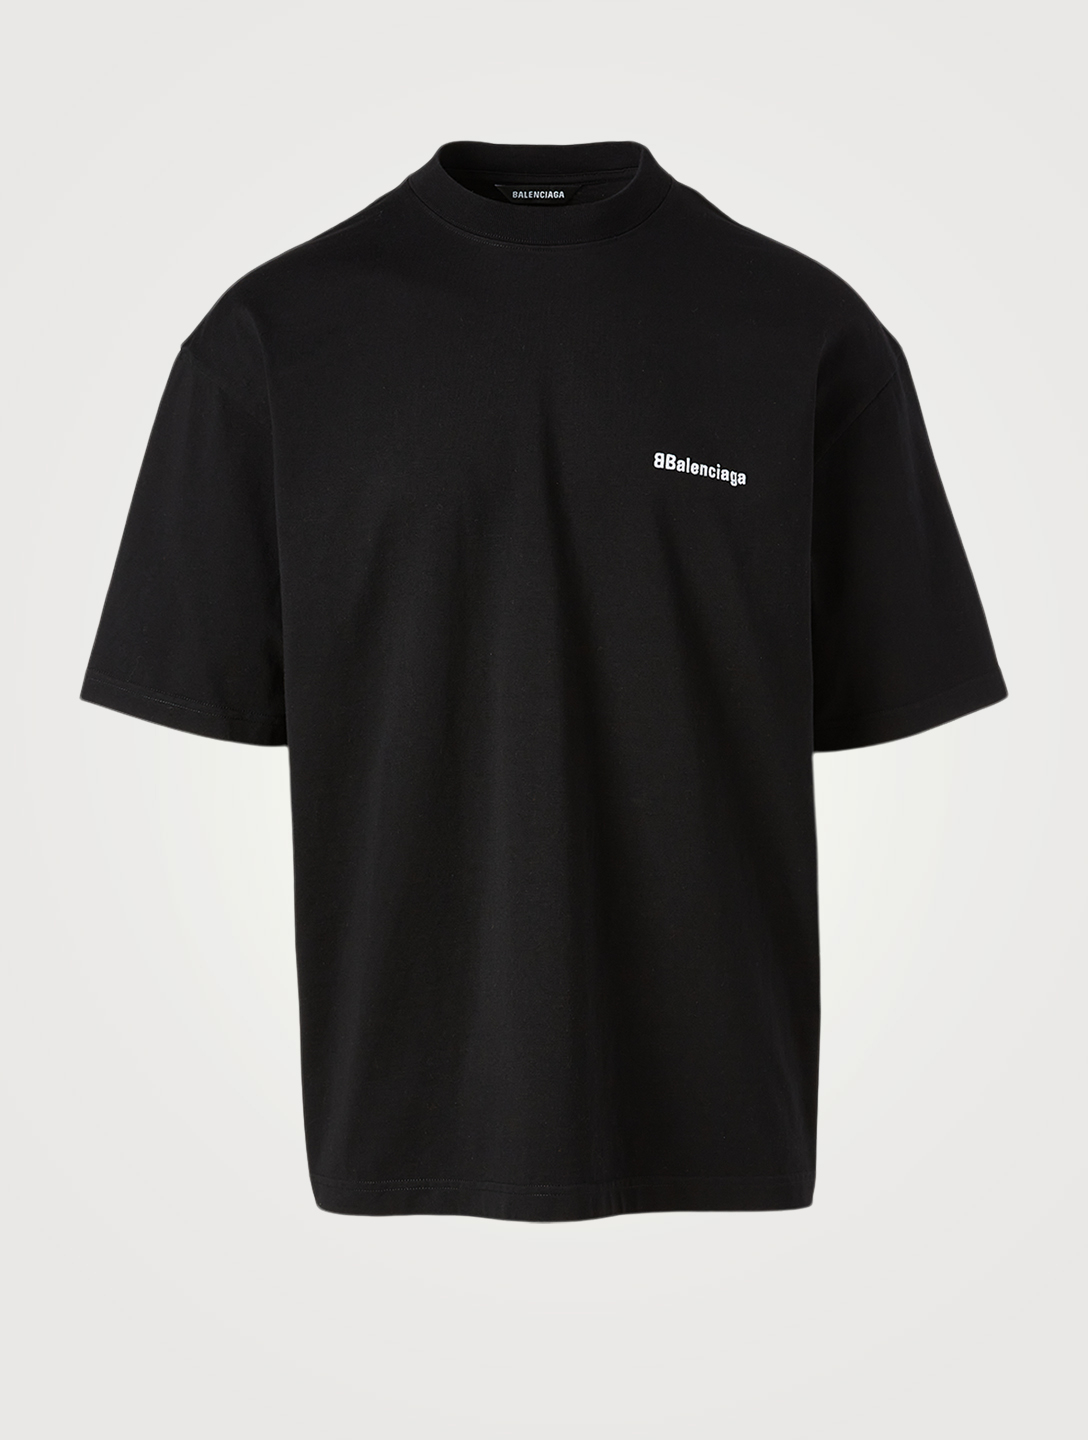 BALENCIAGA BB Corp Cotton T-Shirt Men's Multi